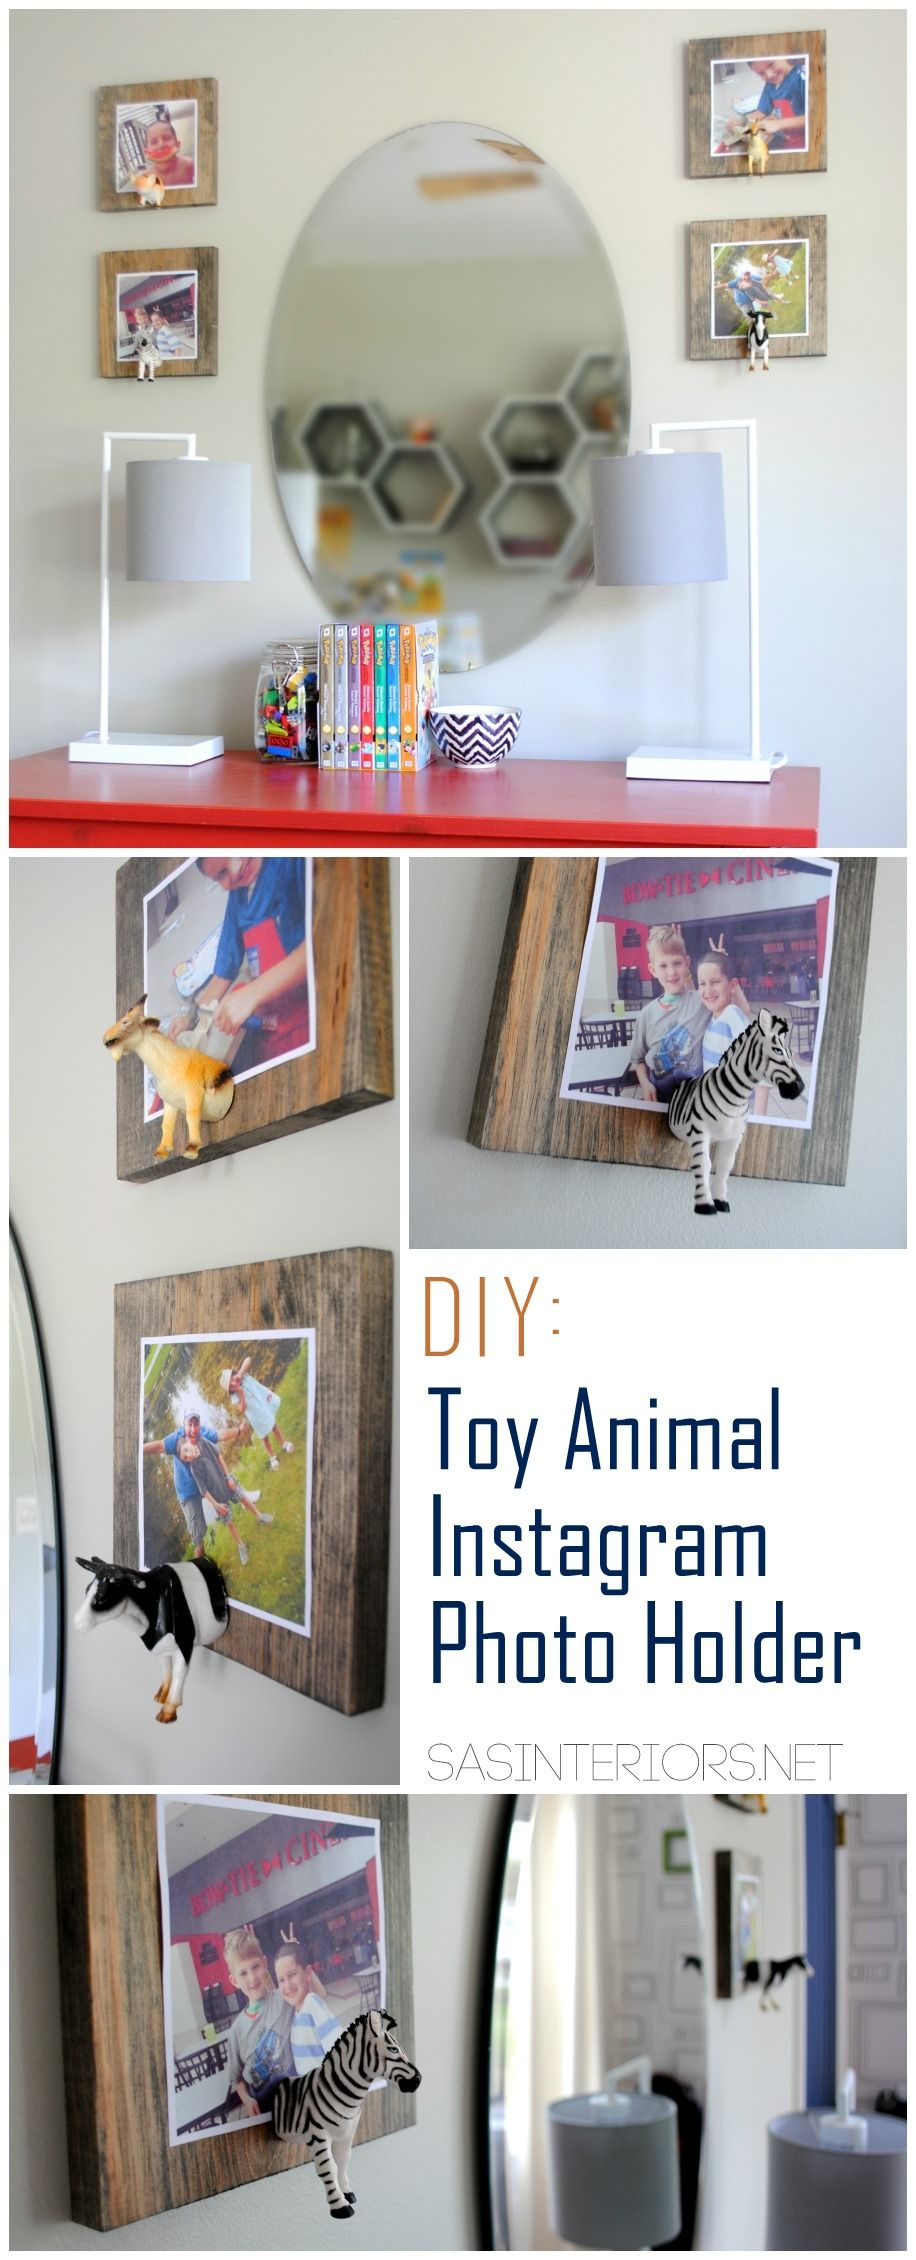 DIY: Toy Animal Instagram Photo Holder.  So cute & easy to make.  Perfect for a kids room or any eclectic space!  Full tutorial at www.sasinteriors.net